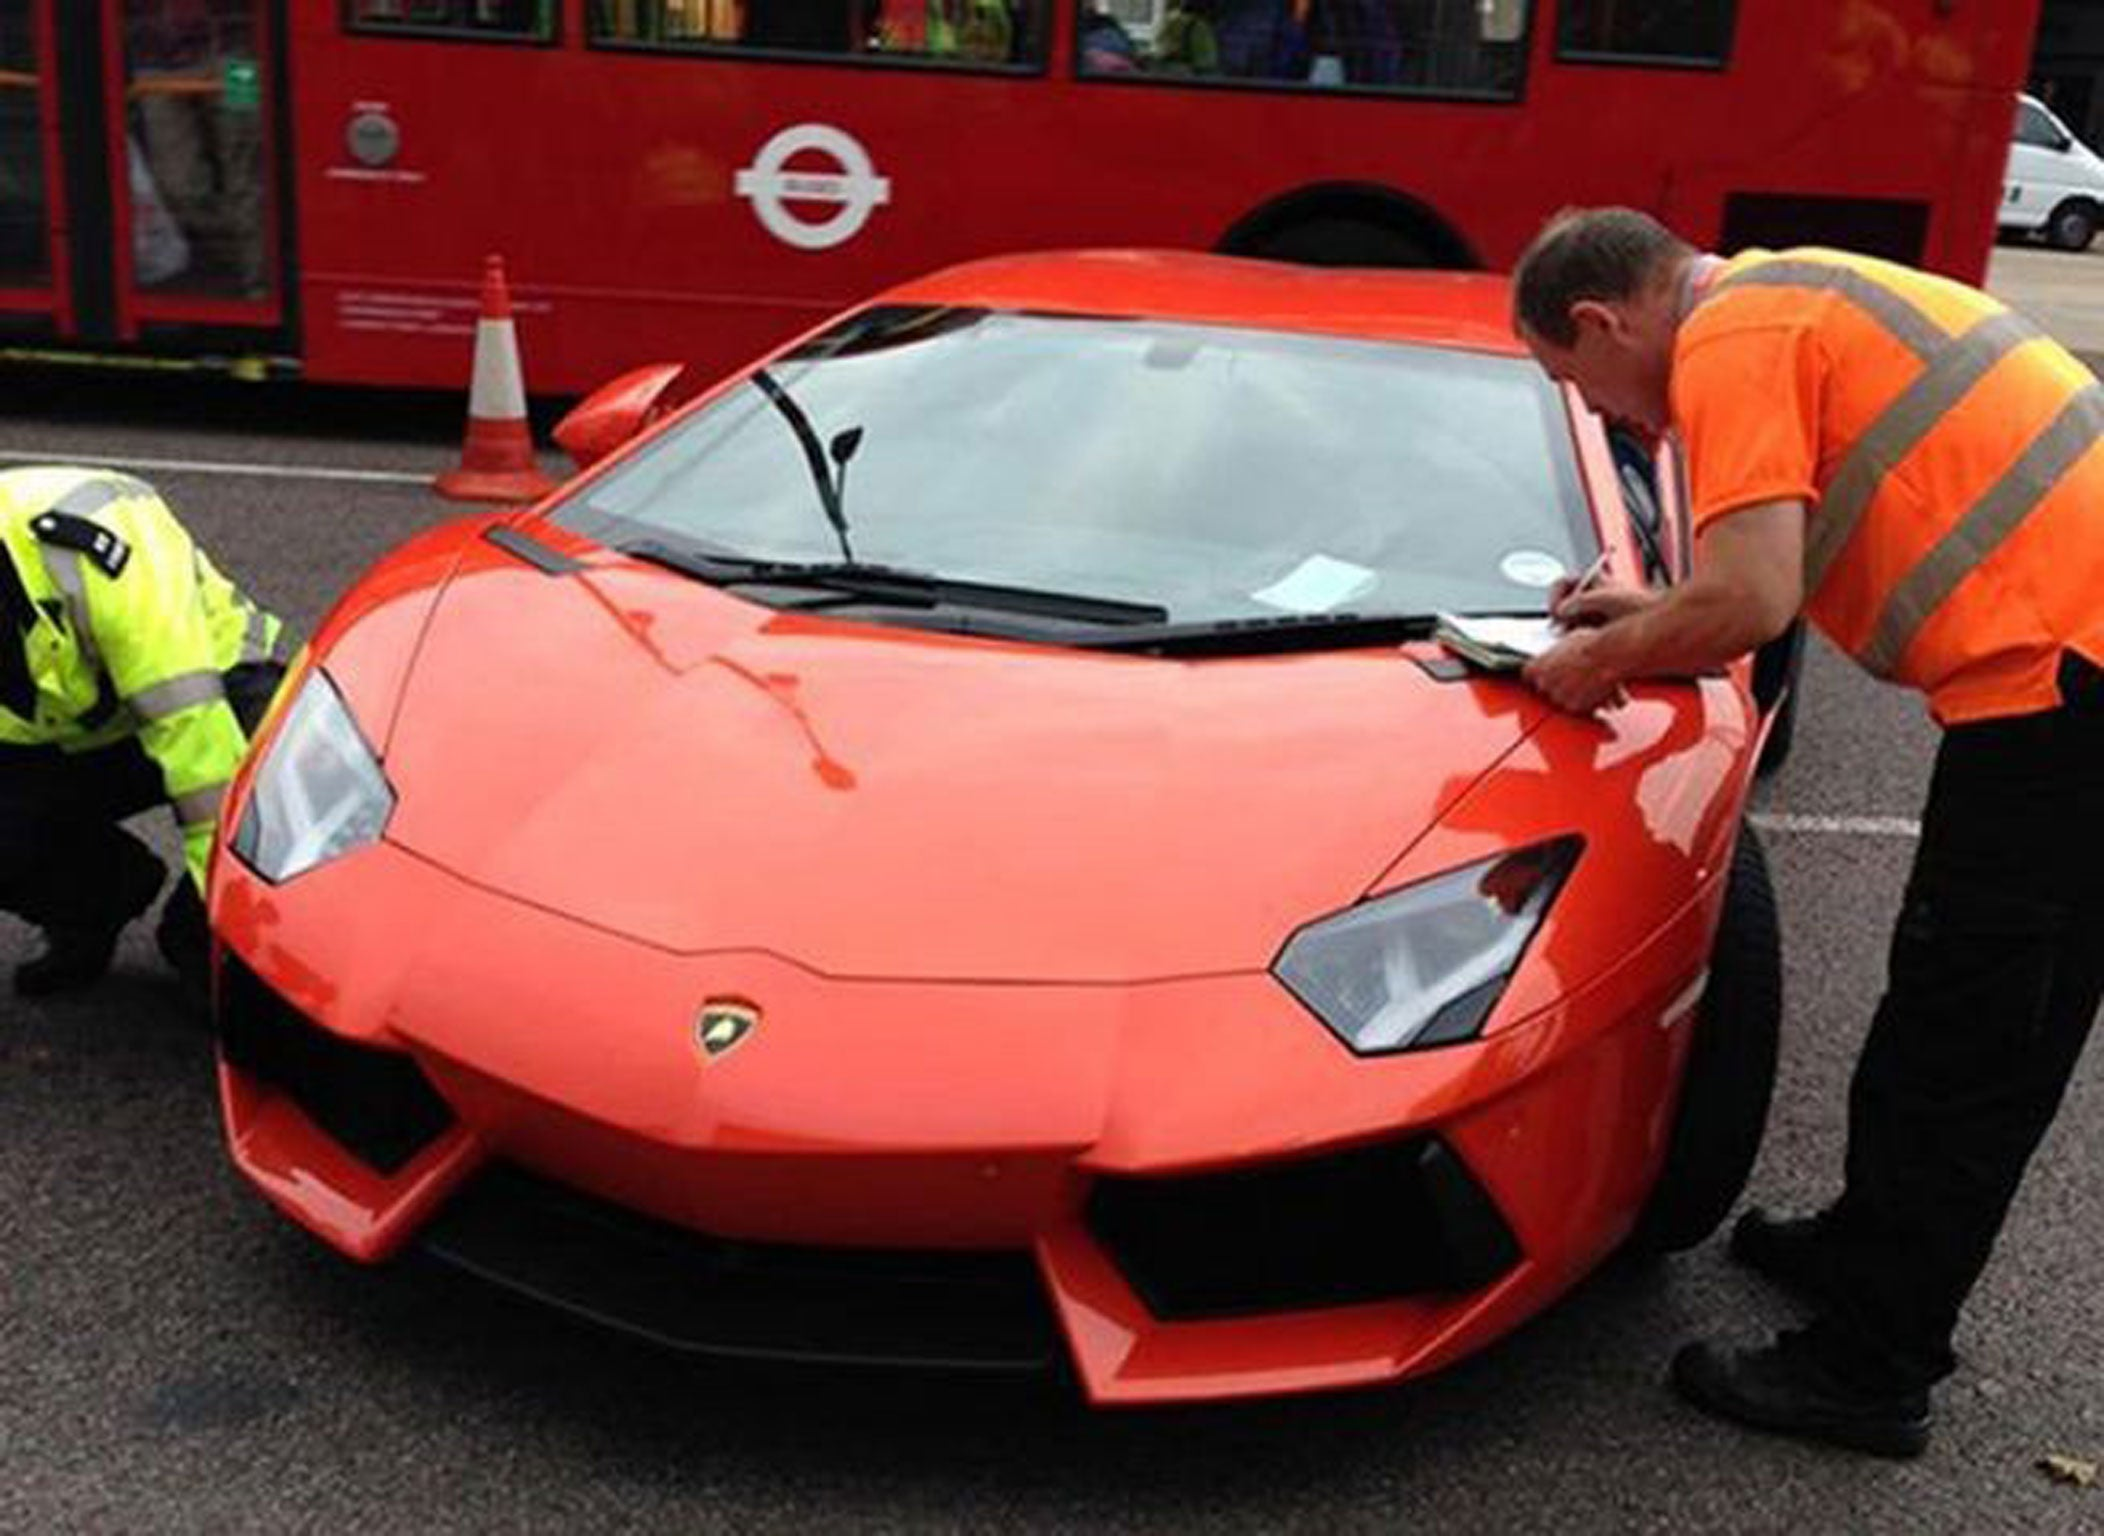 Bad Marques: £400,000 Orange Lamborghini Aventador Becomes Latest Supercar  To Fall Foul Of Police Crackdown On Uninsured Vehicles | The Independent